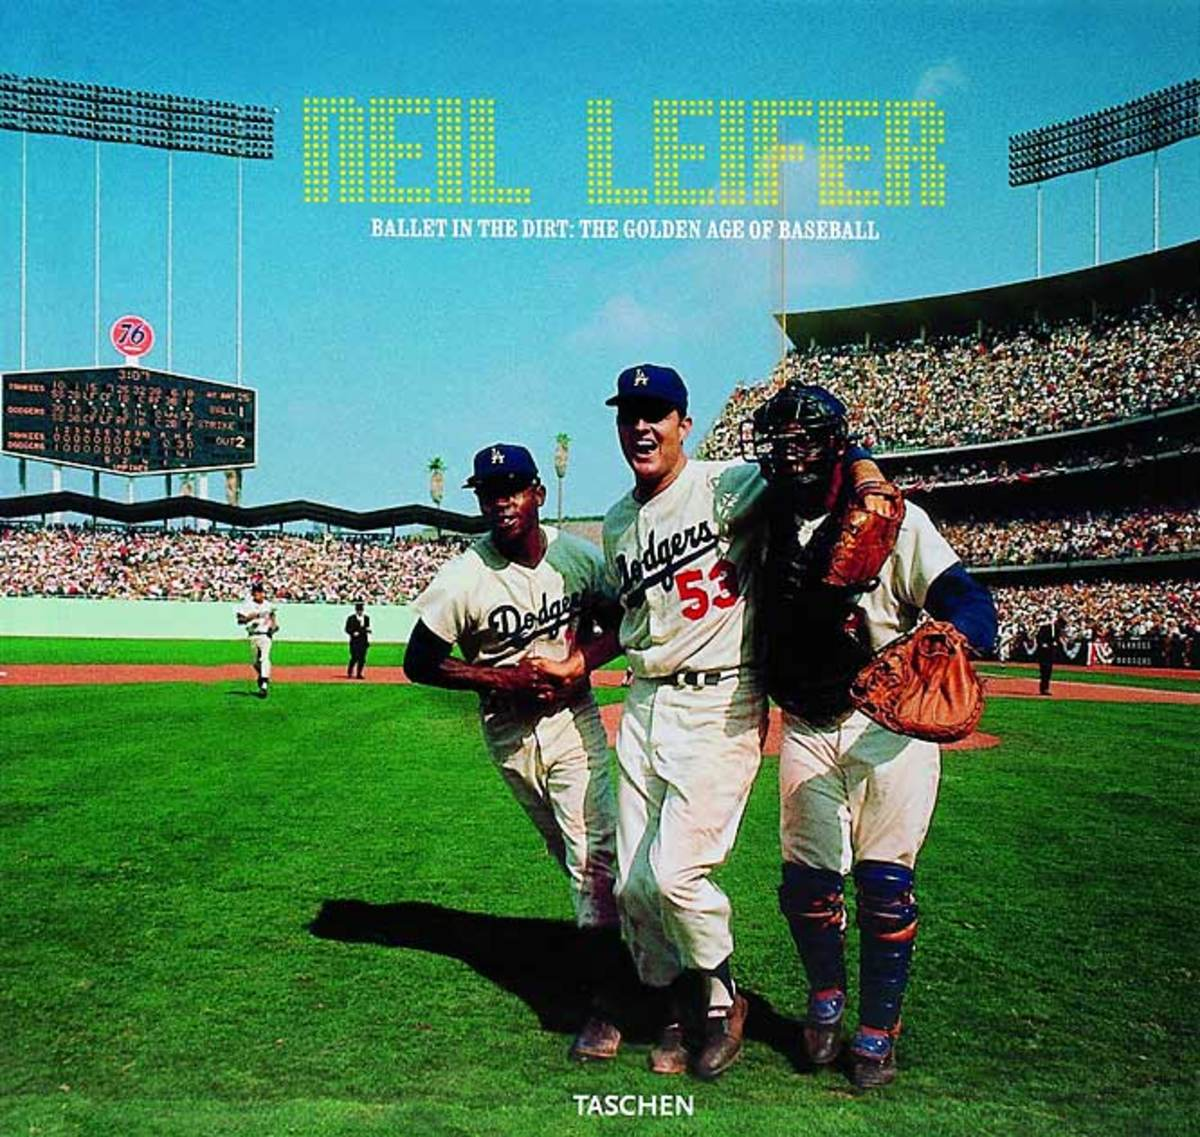 Ballet In The Dirt: The Golden Age Of Baseball